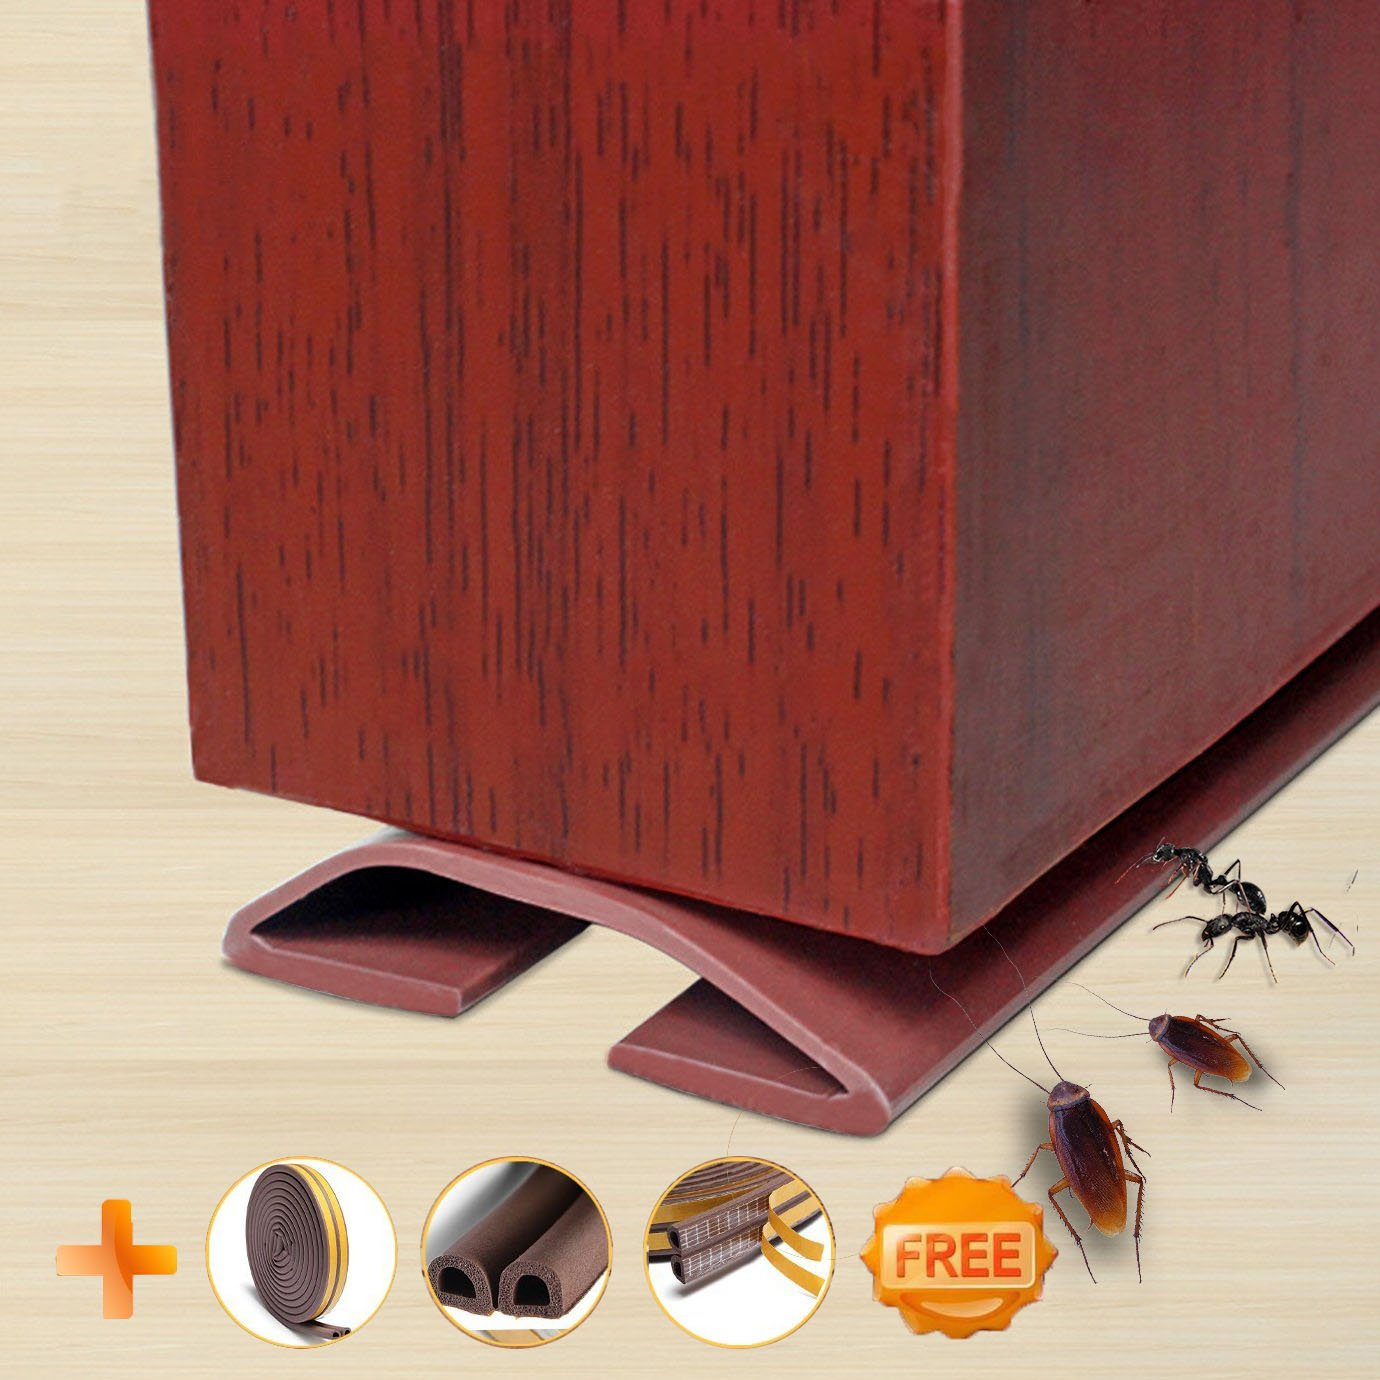 Under Door Draft Blocker Draught Excluder Self-adhesive Rubber Door Bottom Seal Strip Under Door Sweep Weather Stripping Door Gap Stopper Soundproofing Noise Insulation 39'' Long (Brown)